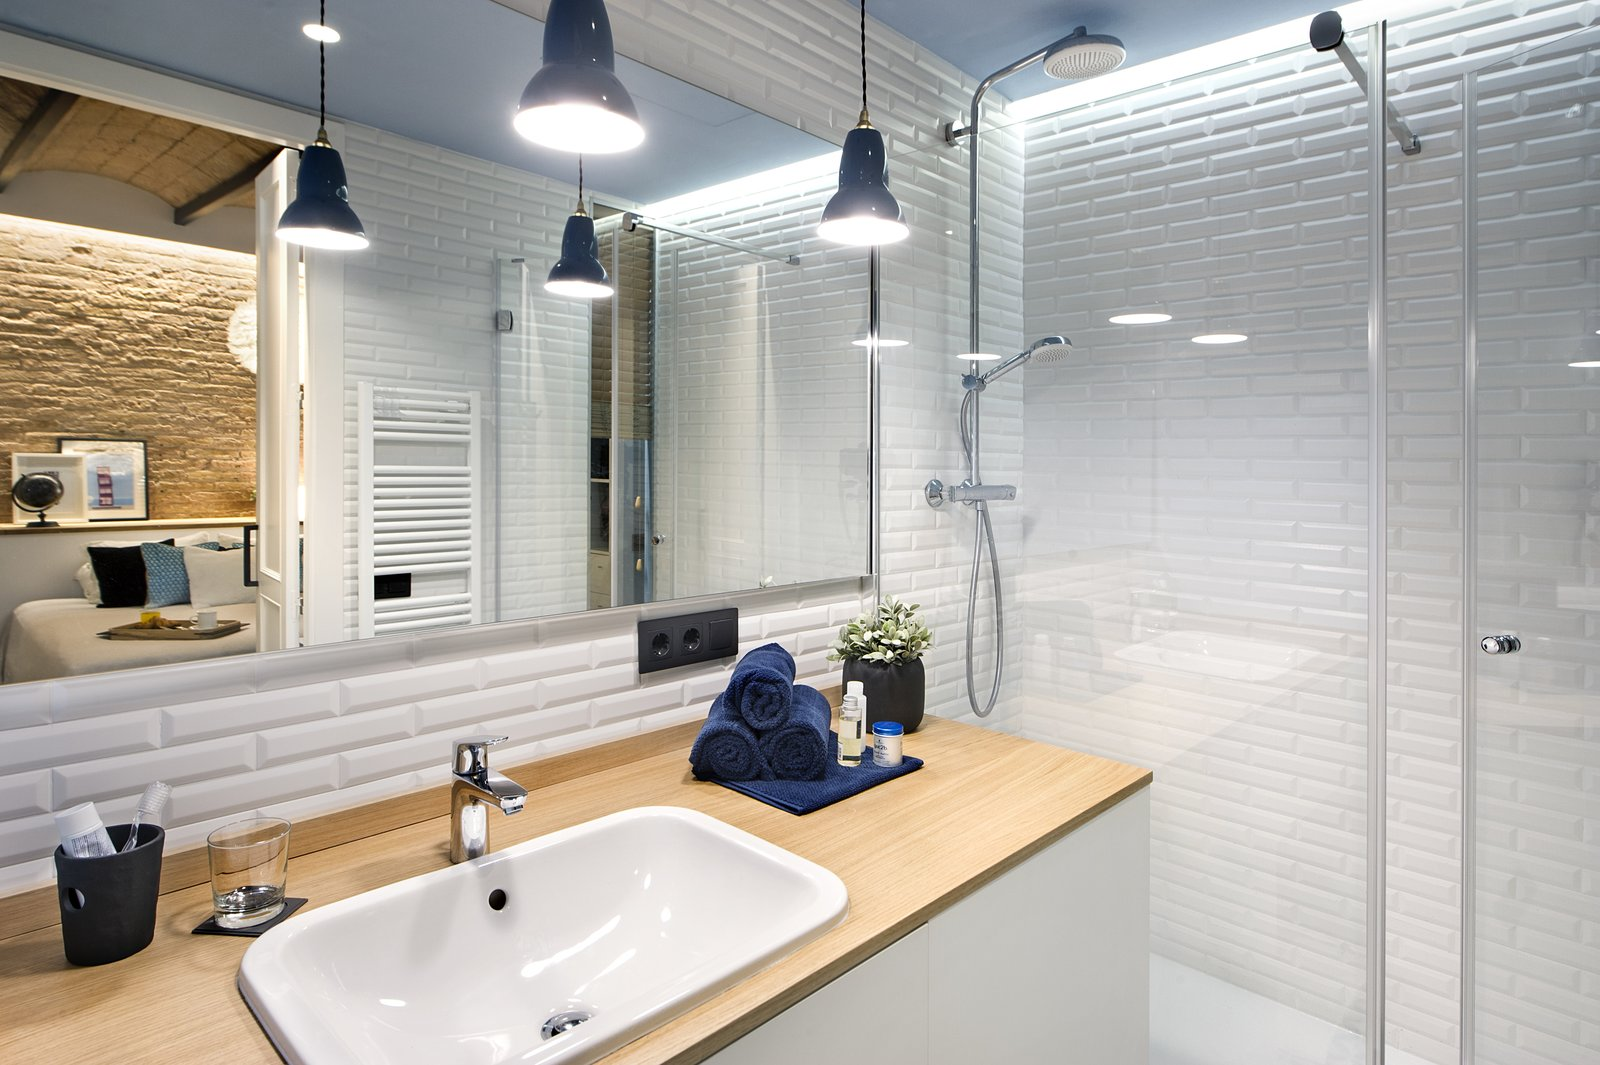 Bath Room, Wood Counter, Enclosed Shower, Drop In Sink, Pendant Lighting, and Ceramic Tile Wall  Photo 10 of 11 in A Smart Layout Maximizes Space in This Compact Urban Beach Apartment in Barcelona